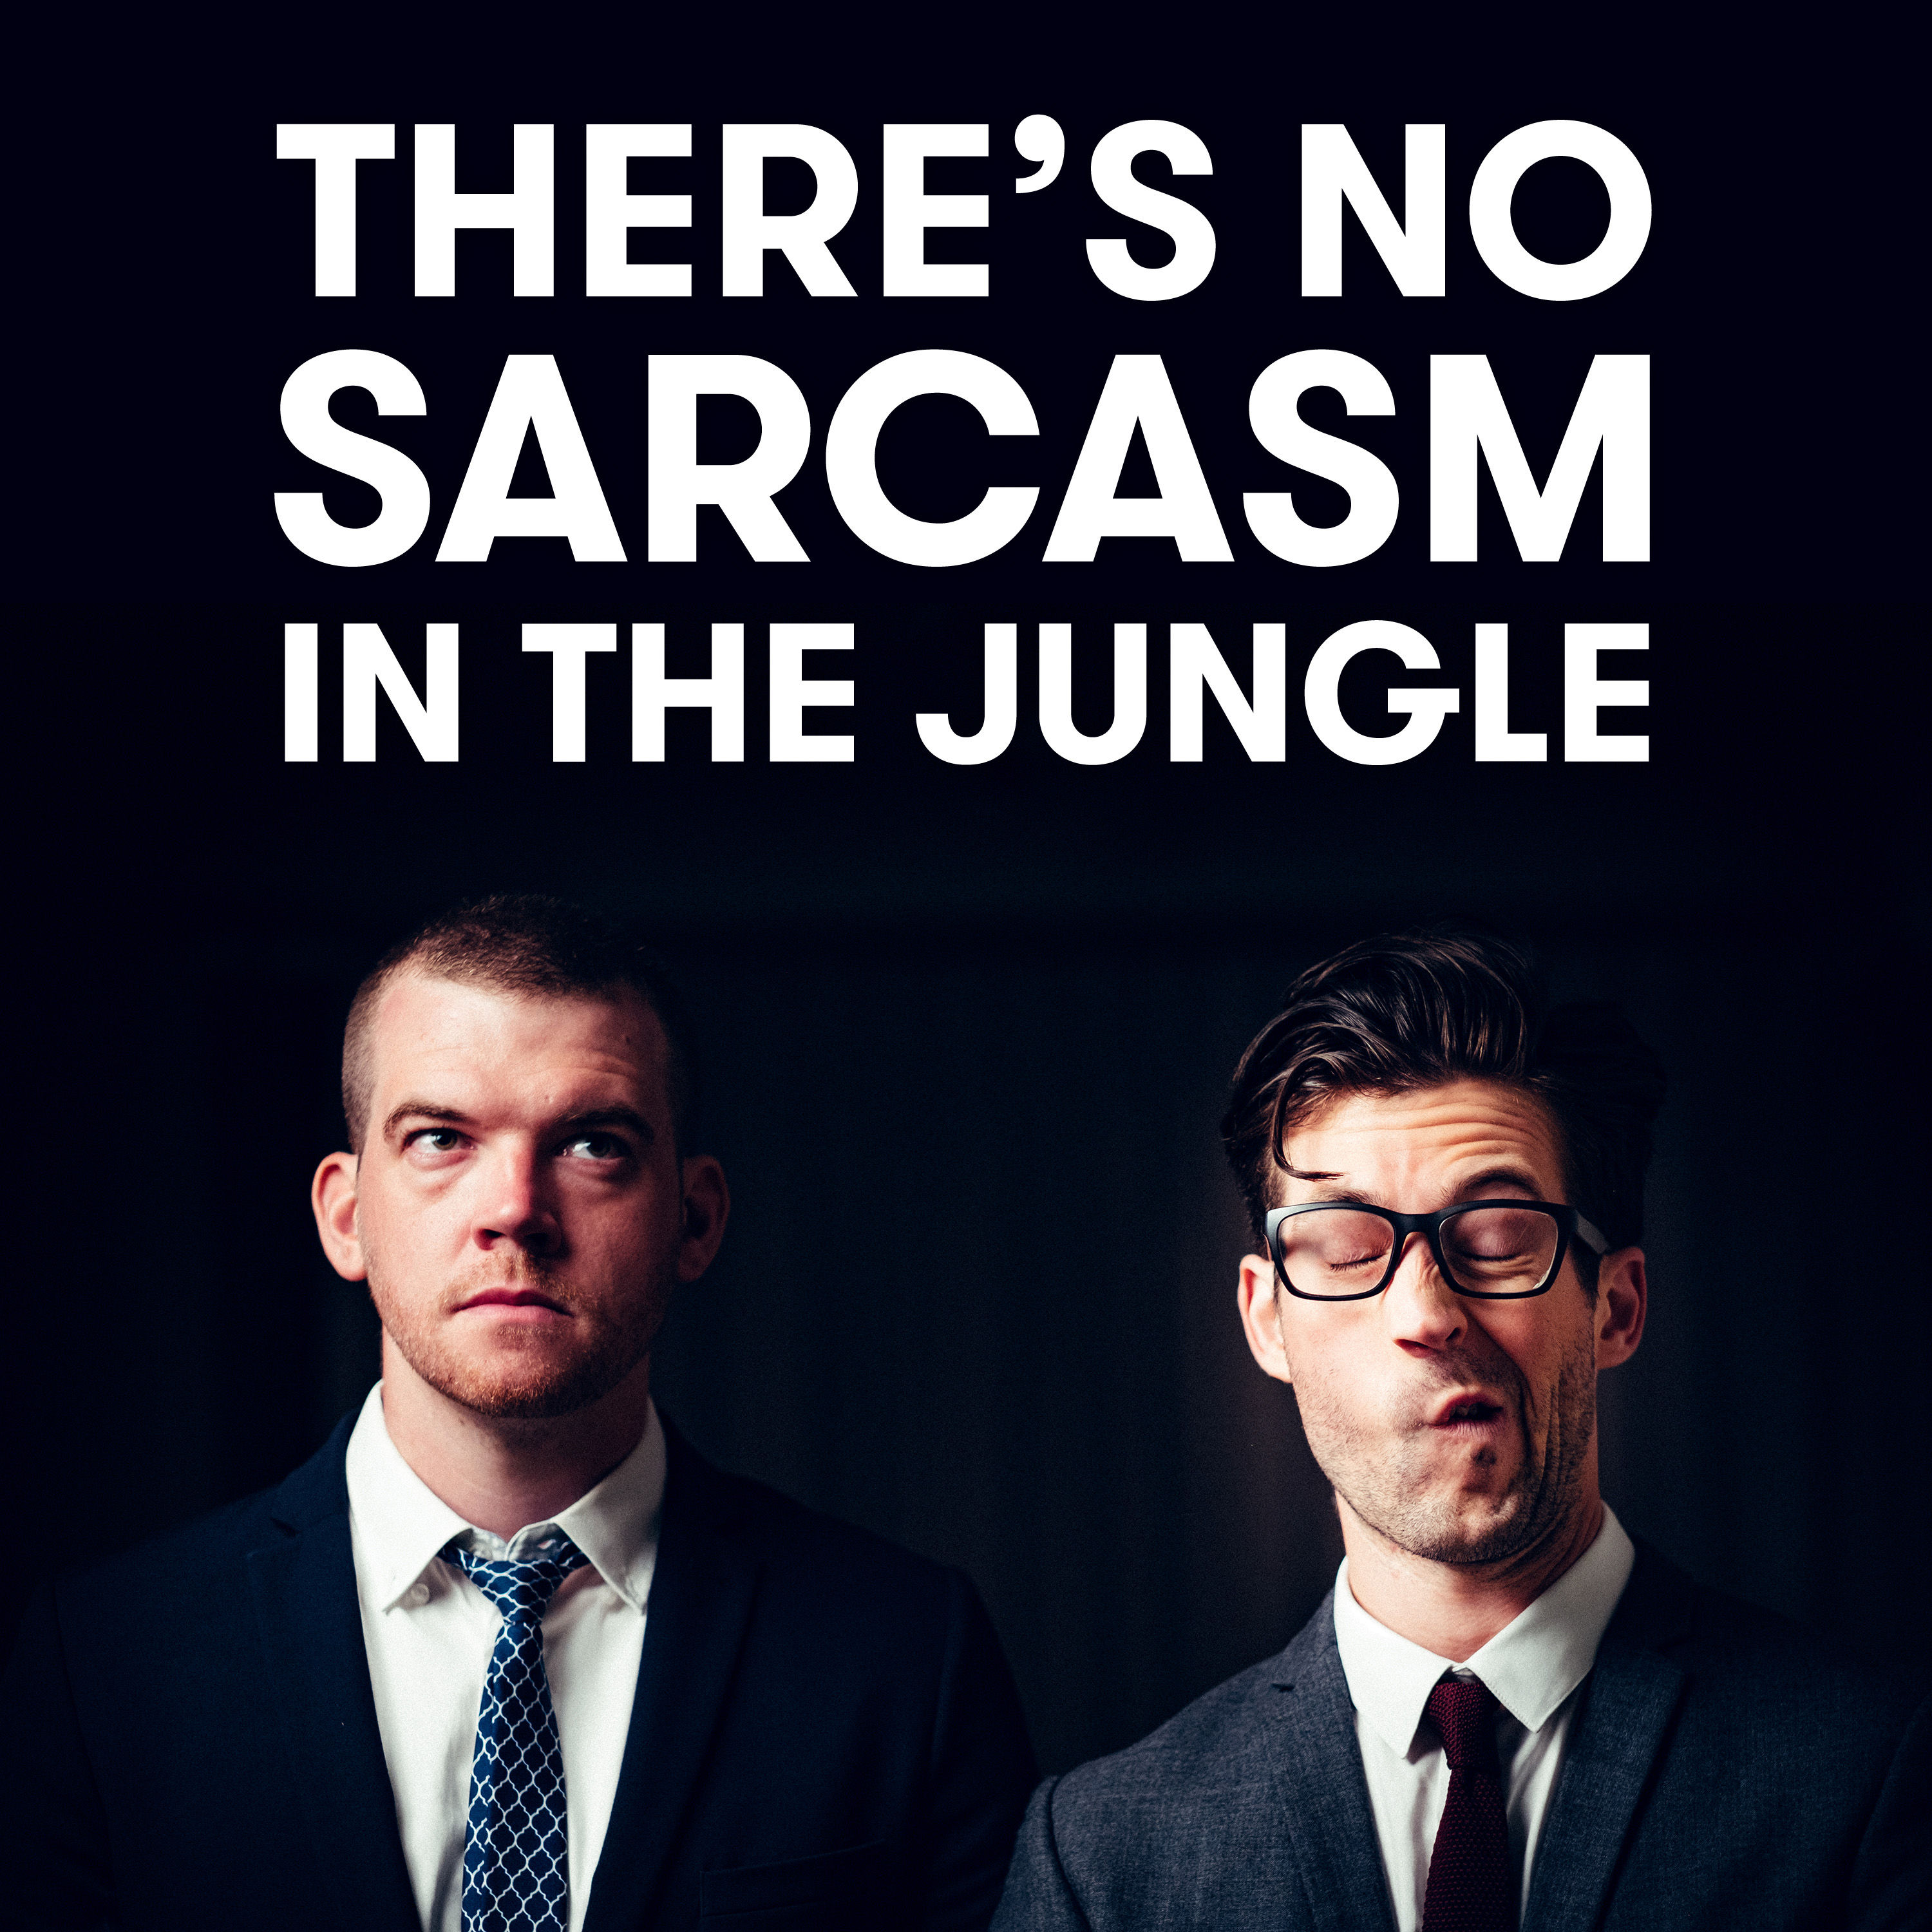 There's No Sarcasm In The Jungle